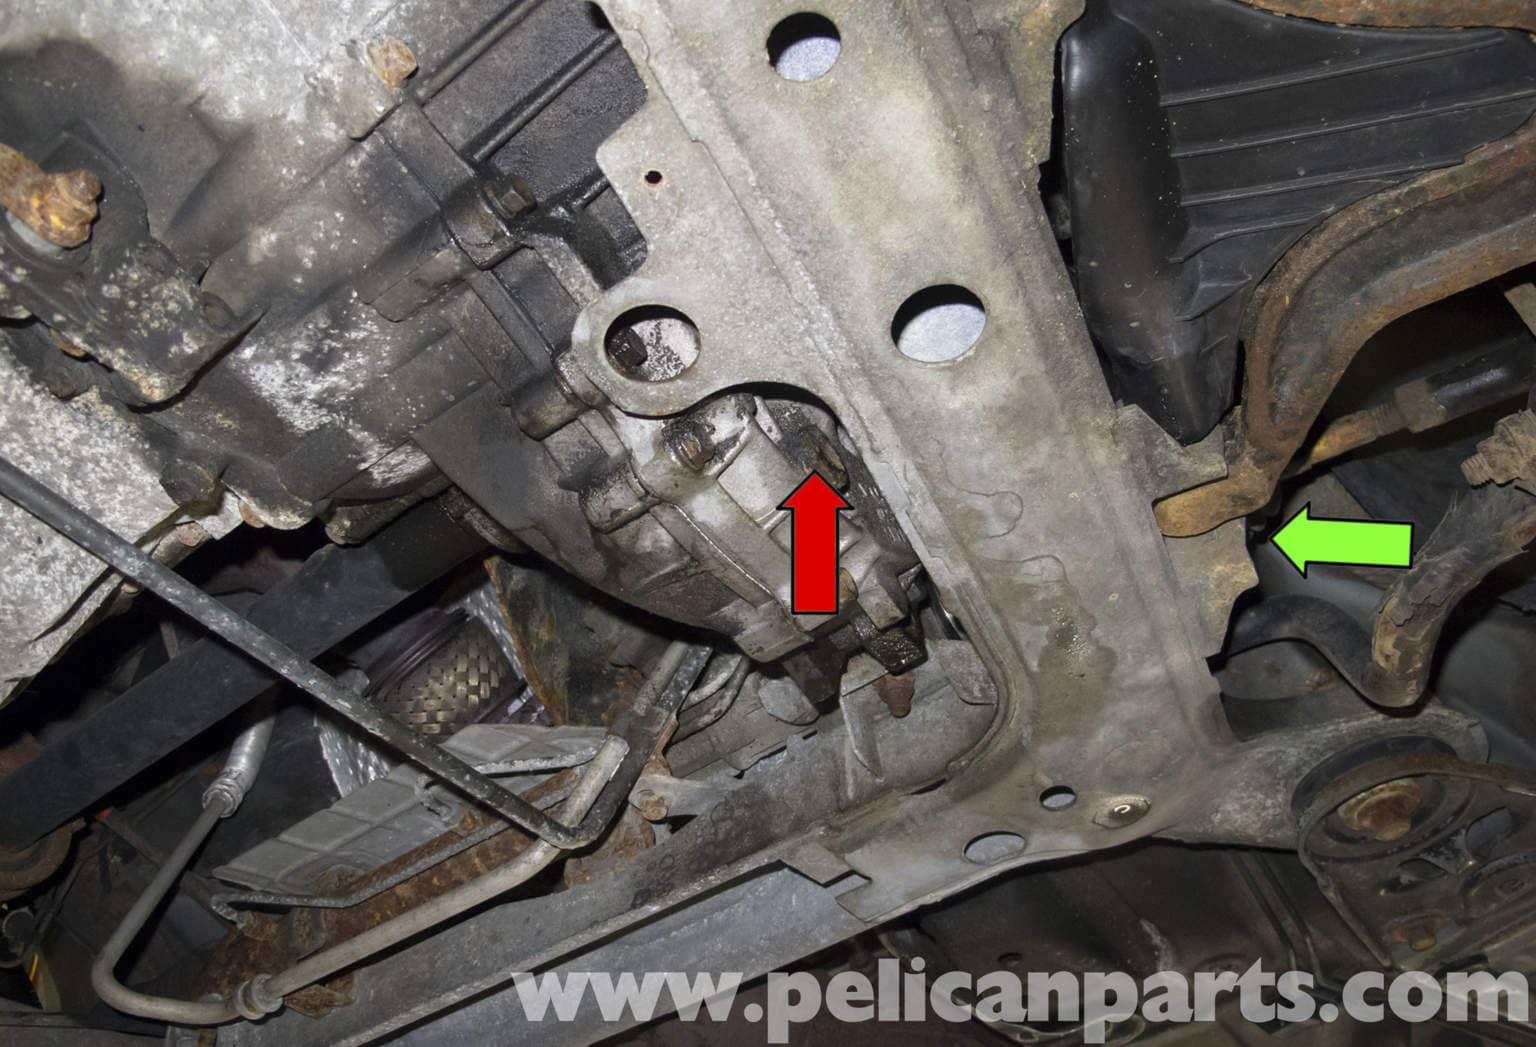 Volvo V70 Manual Transmission Fluid Replacement (1998-2007) - Pelican Parts DIY Maintenance Article